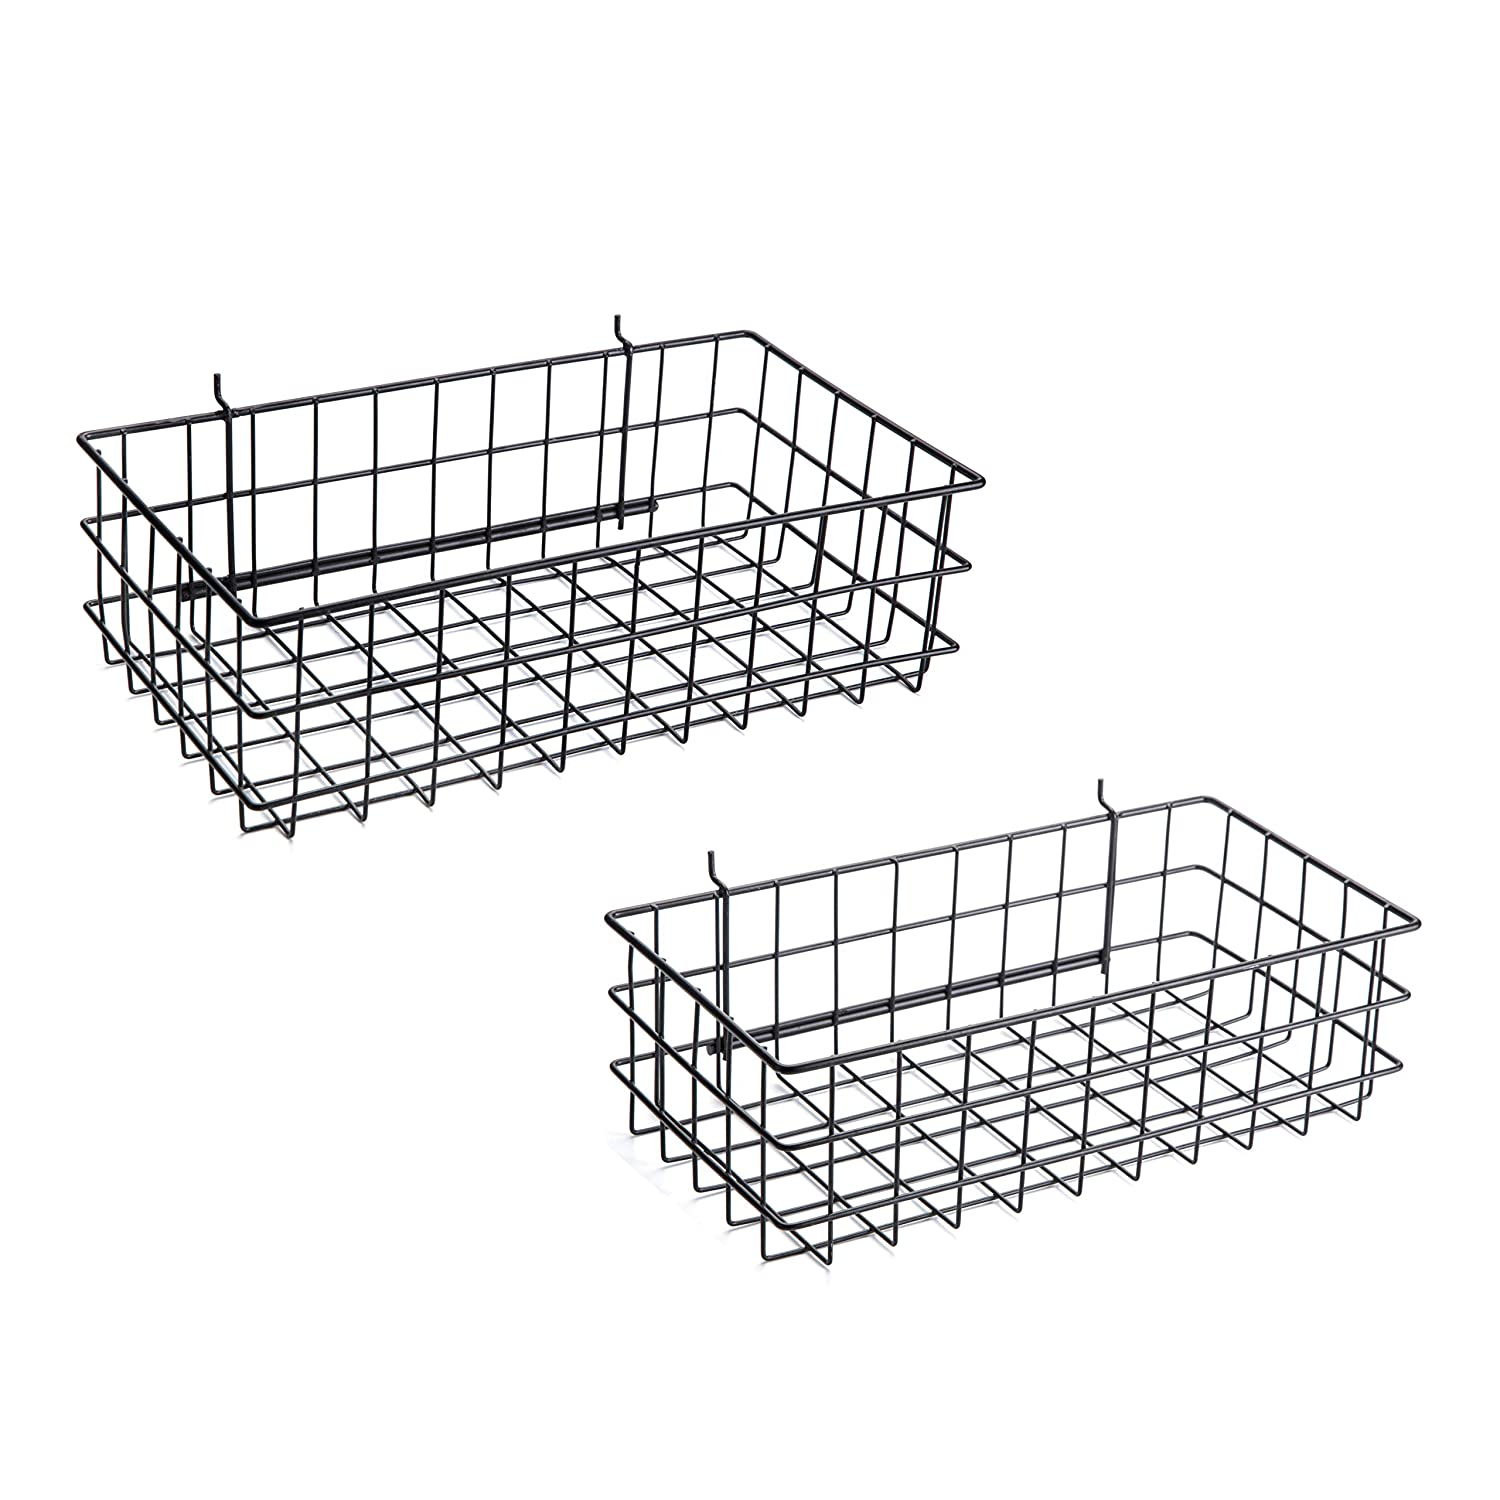 Pegboard Baskets Set of 4 Black - Hooks to 1/4' or 3/16' Hole Peg Board - Square Style Wire Shelf Baskets - Organize Tools, Workbench, Accessories, Garage Storage - Wall Organizer Attachments